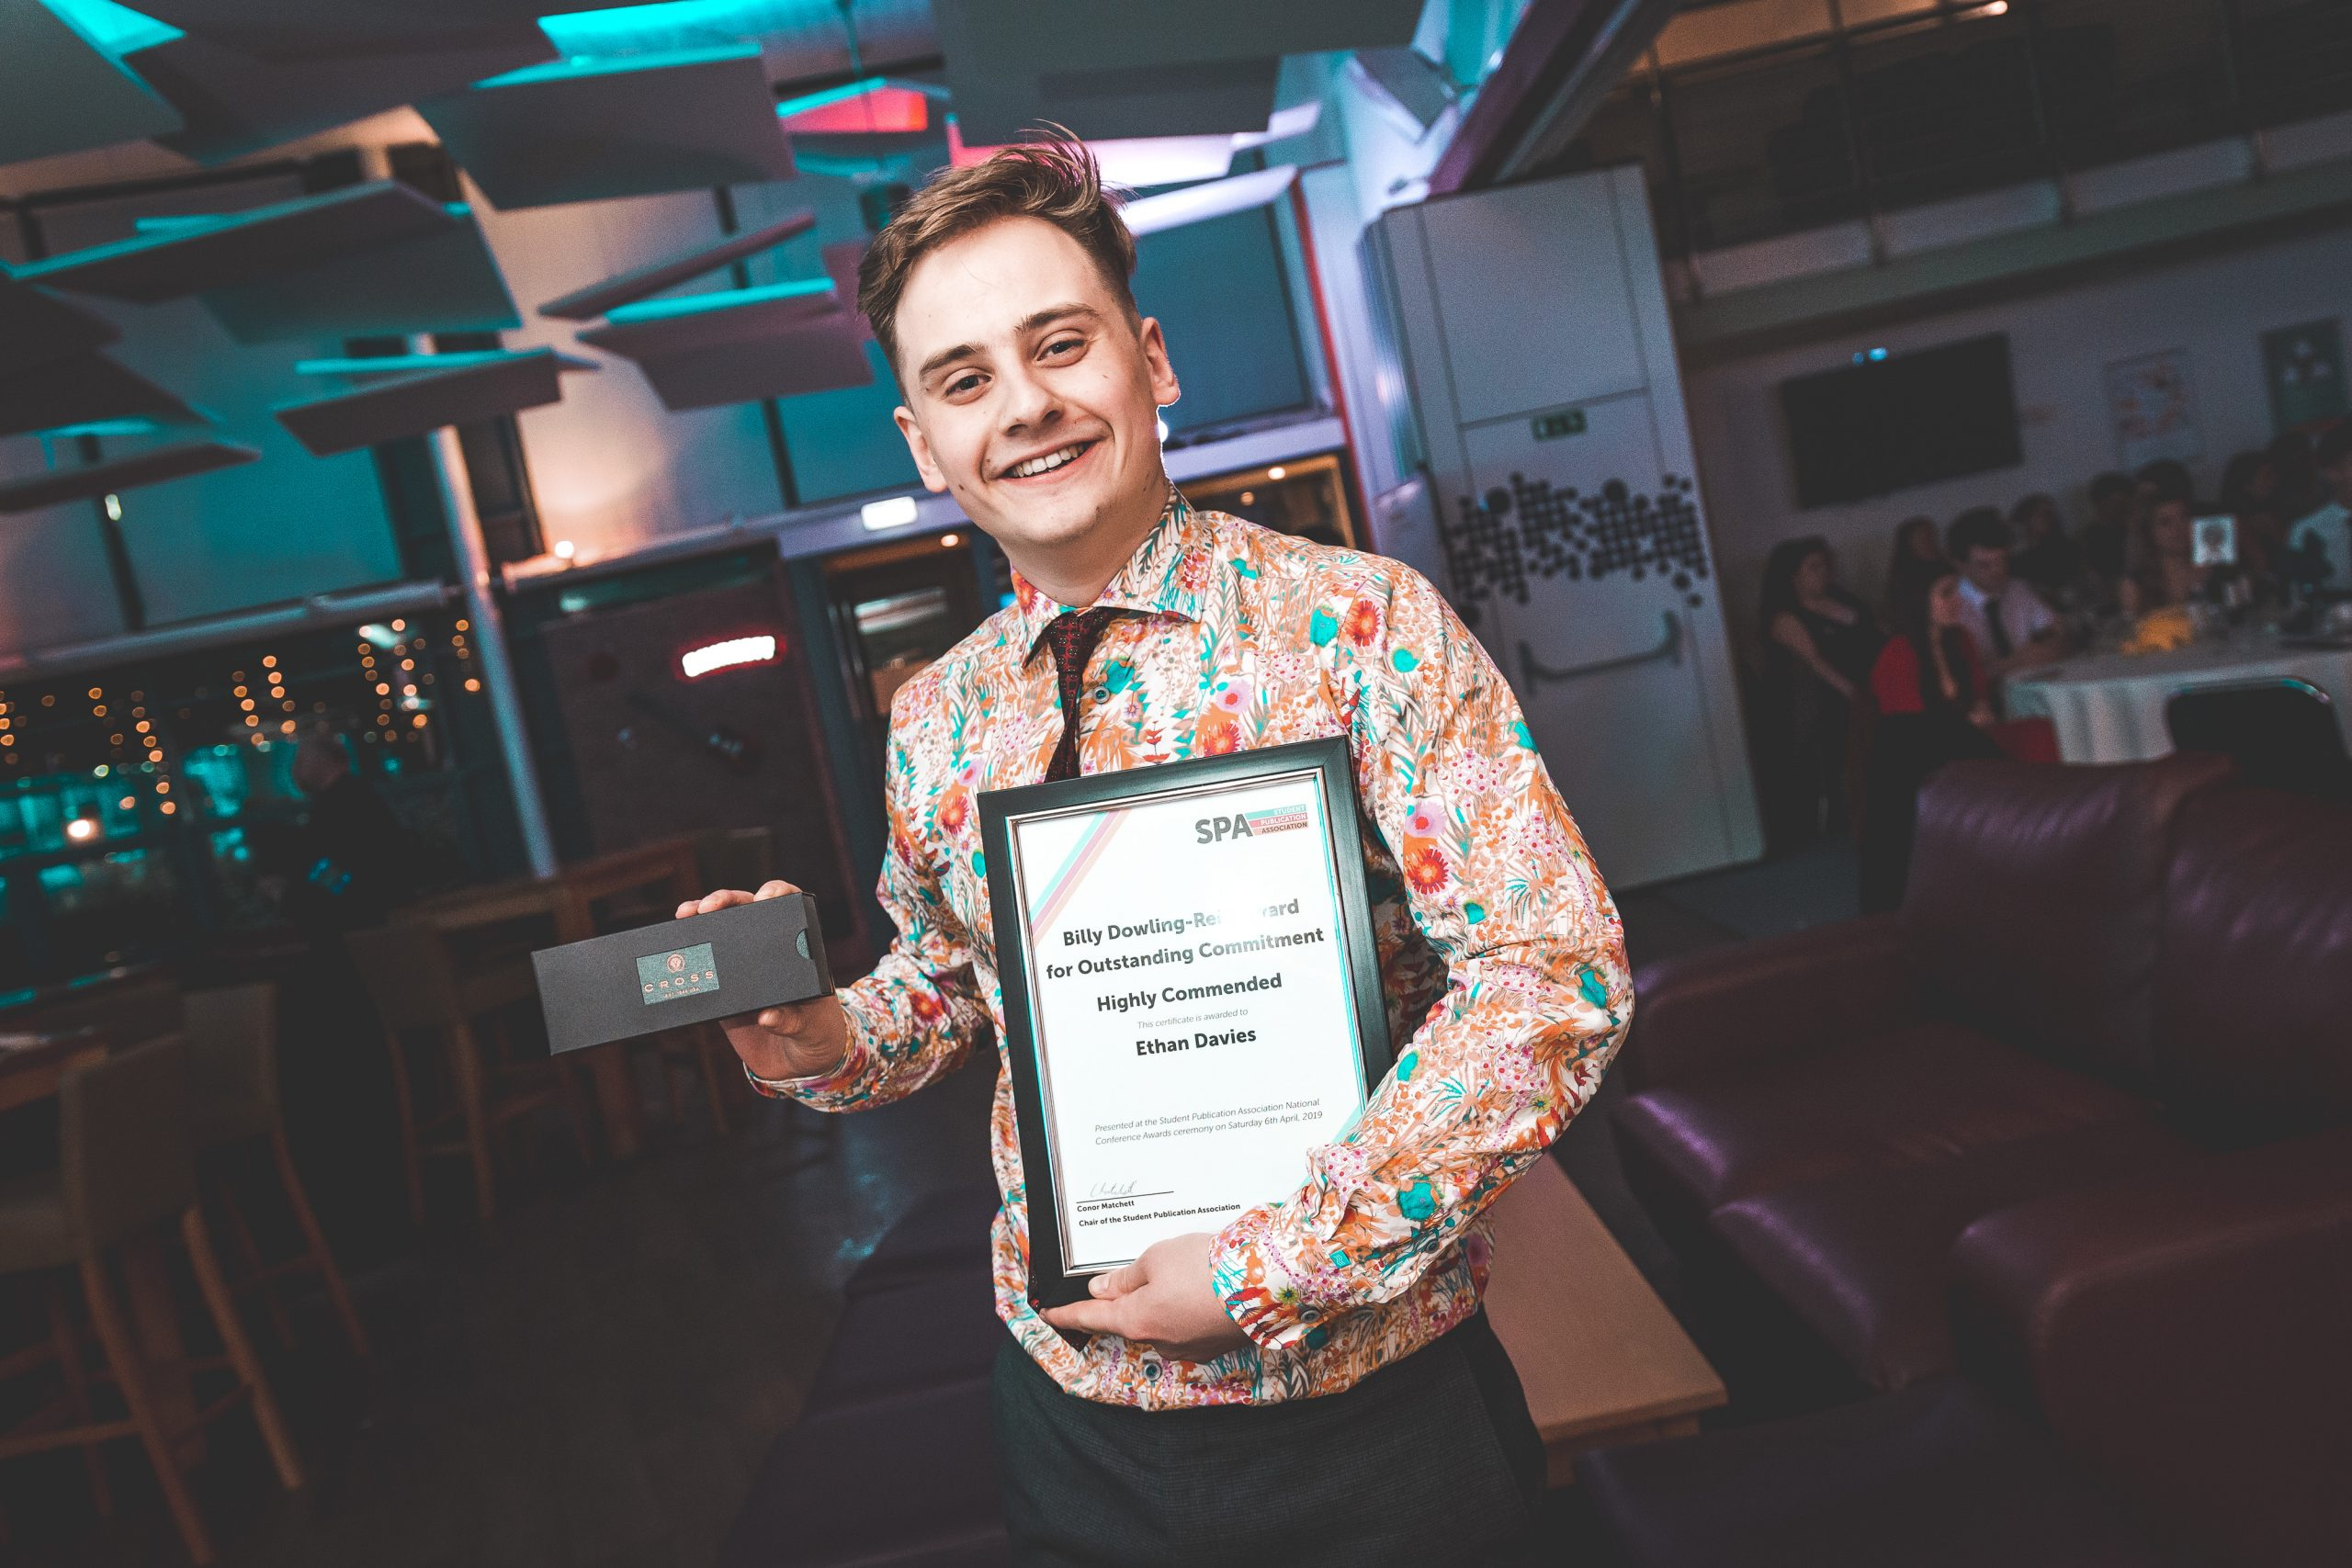 News Associates alumni Ethan with her award at the SPA National Conference in 2019. 2019. He's holding her framed certificate posing at the camera. He's wearing a very jazzy orange and turquoise floral shirt and has a huge grin.